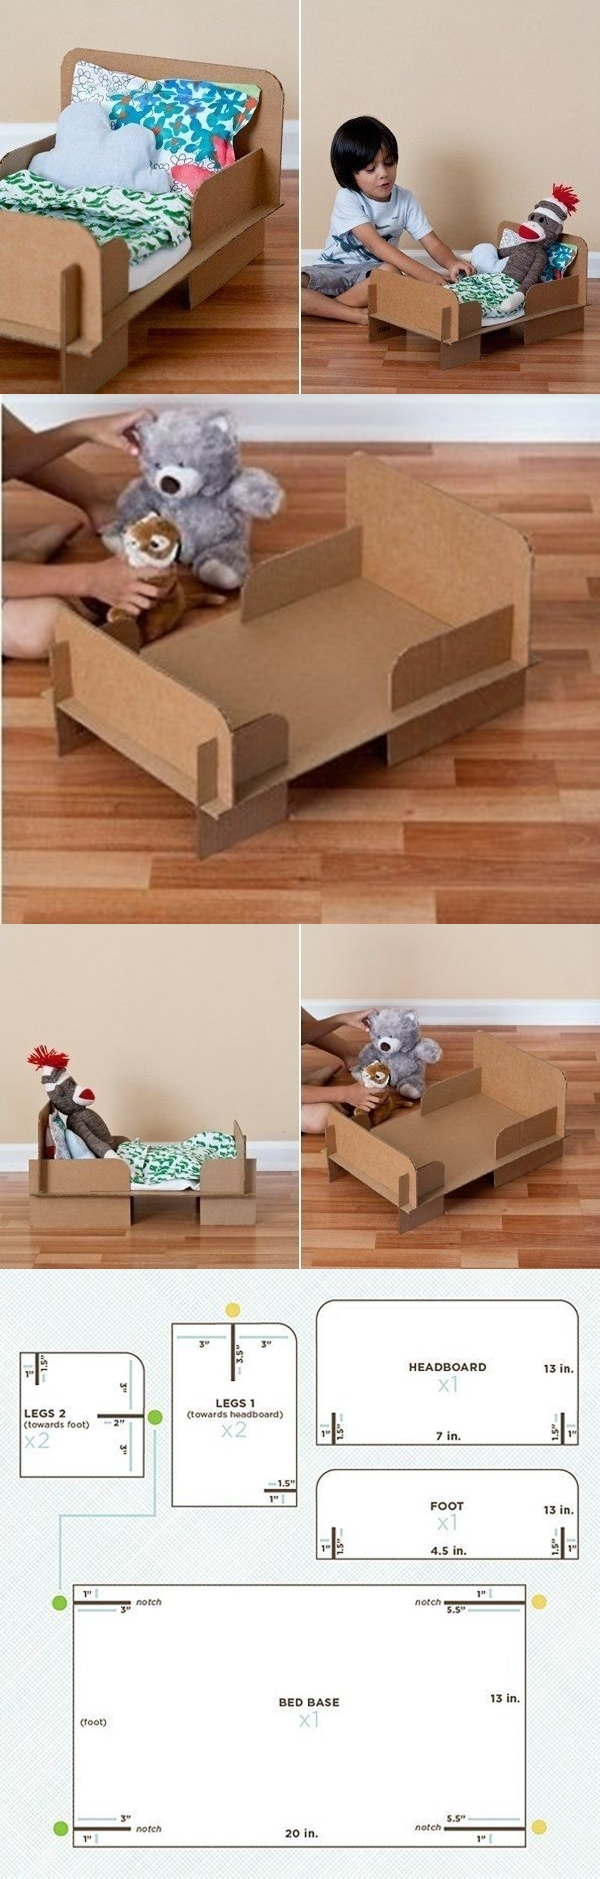 DIY Doll Bed from Carton Box - carton bed for doll